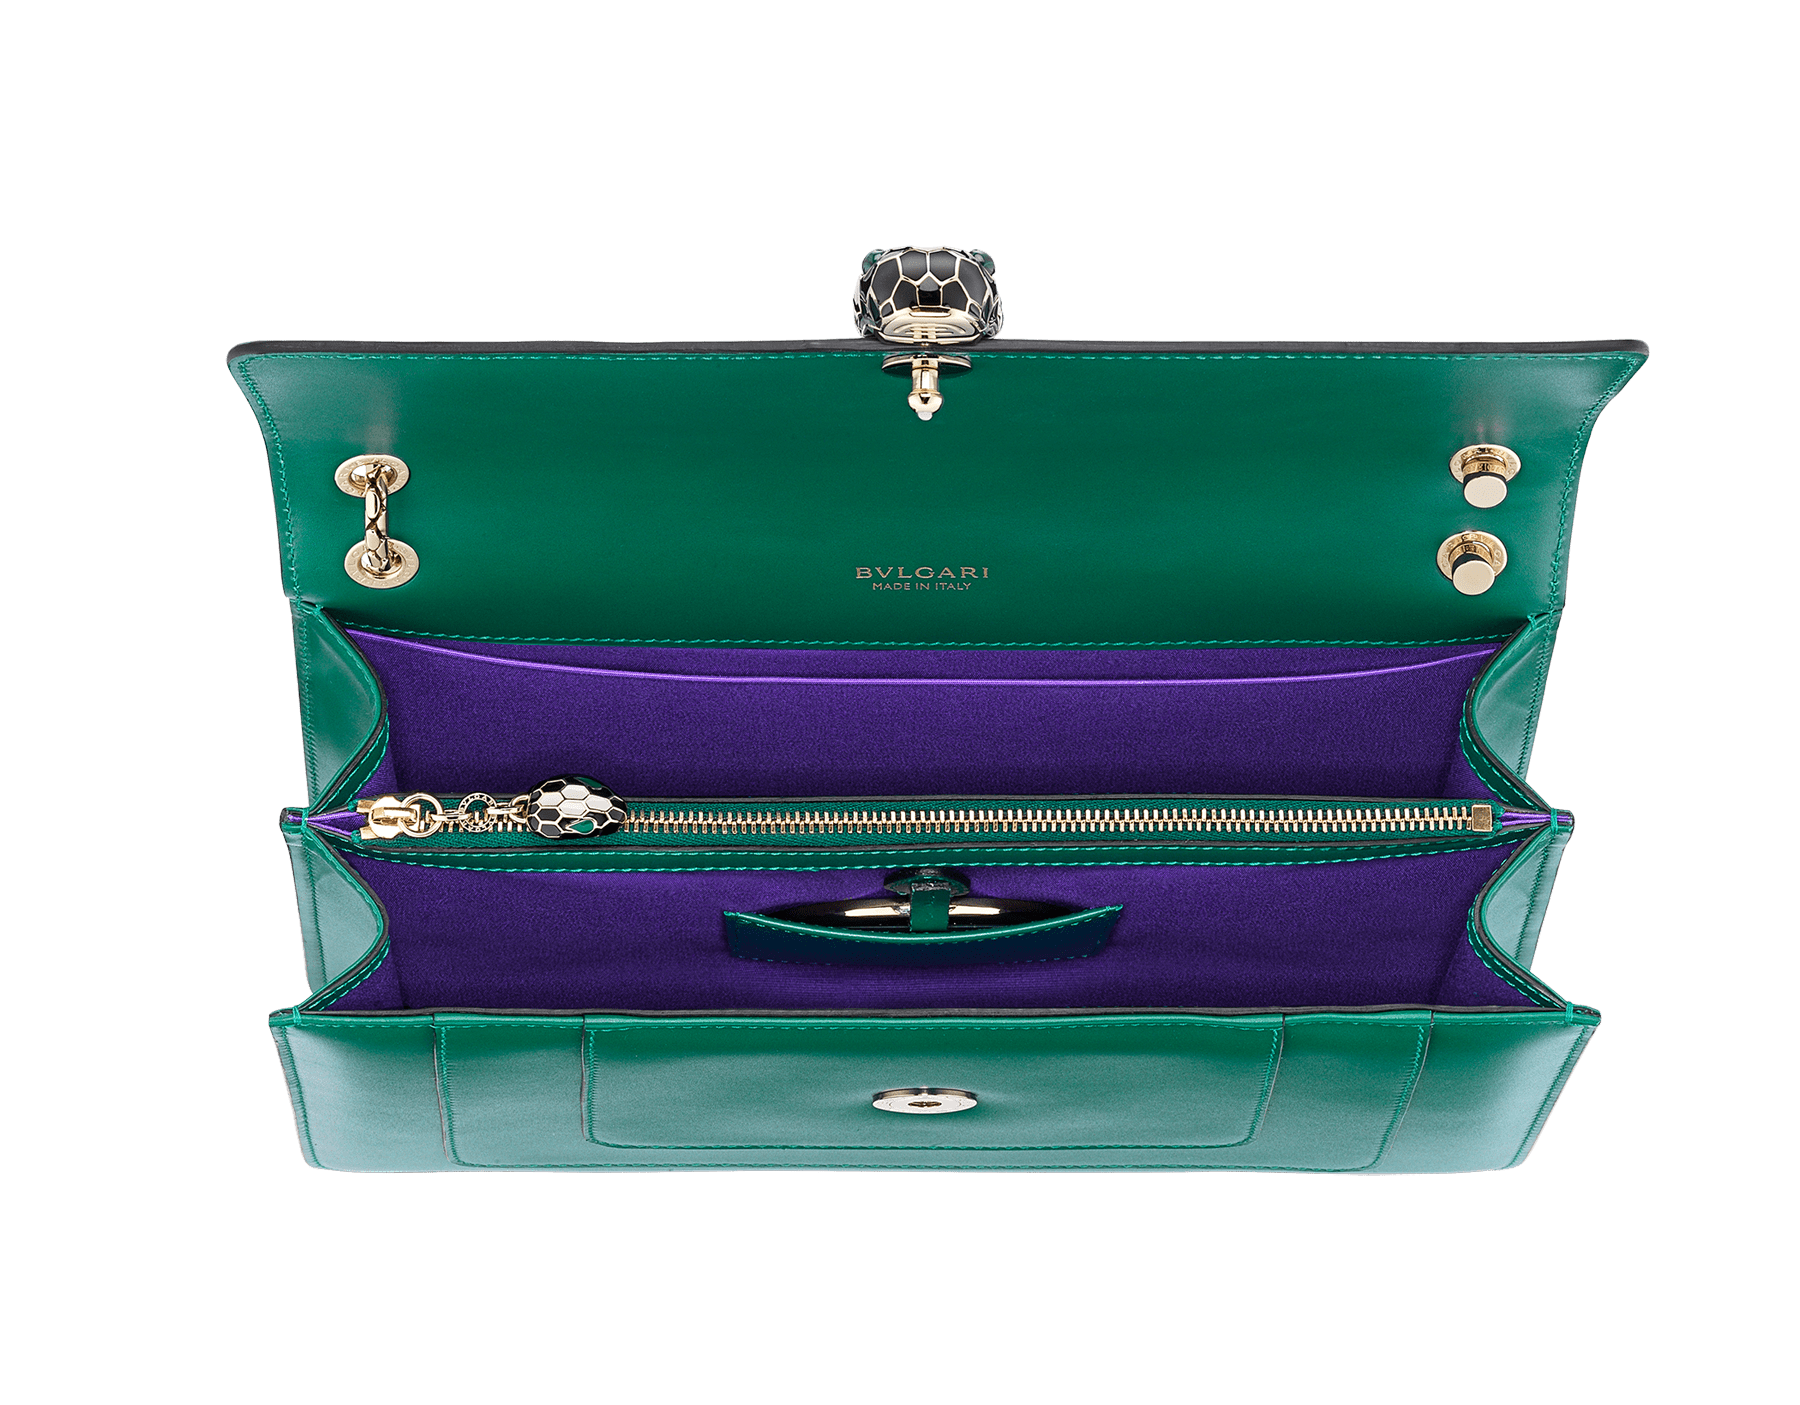 """""""Serpenti Forever"""" shoulder bag in black calf leather with emerald green gros grain internal lining. Iconic snakehead closure in light gold plated brass enriched with black and white agate enamel and green malachite eyes. 1089-Cla image 3"""